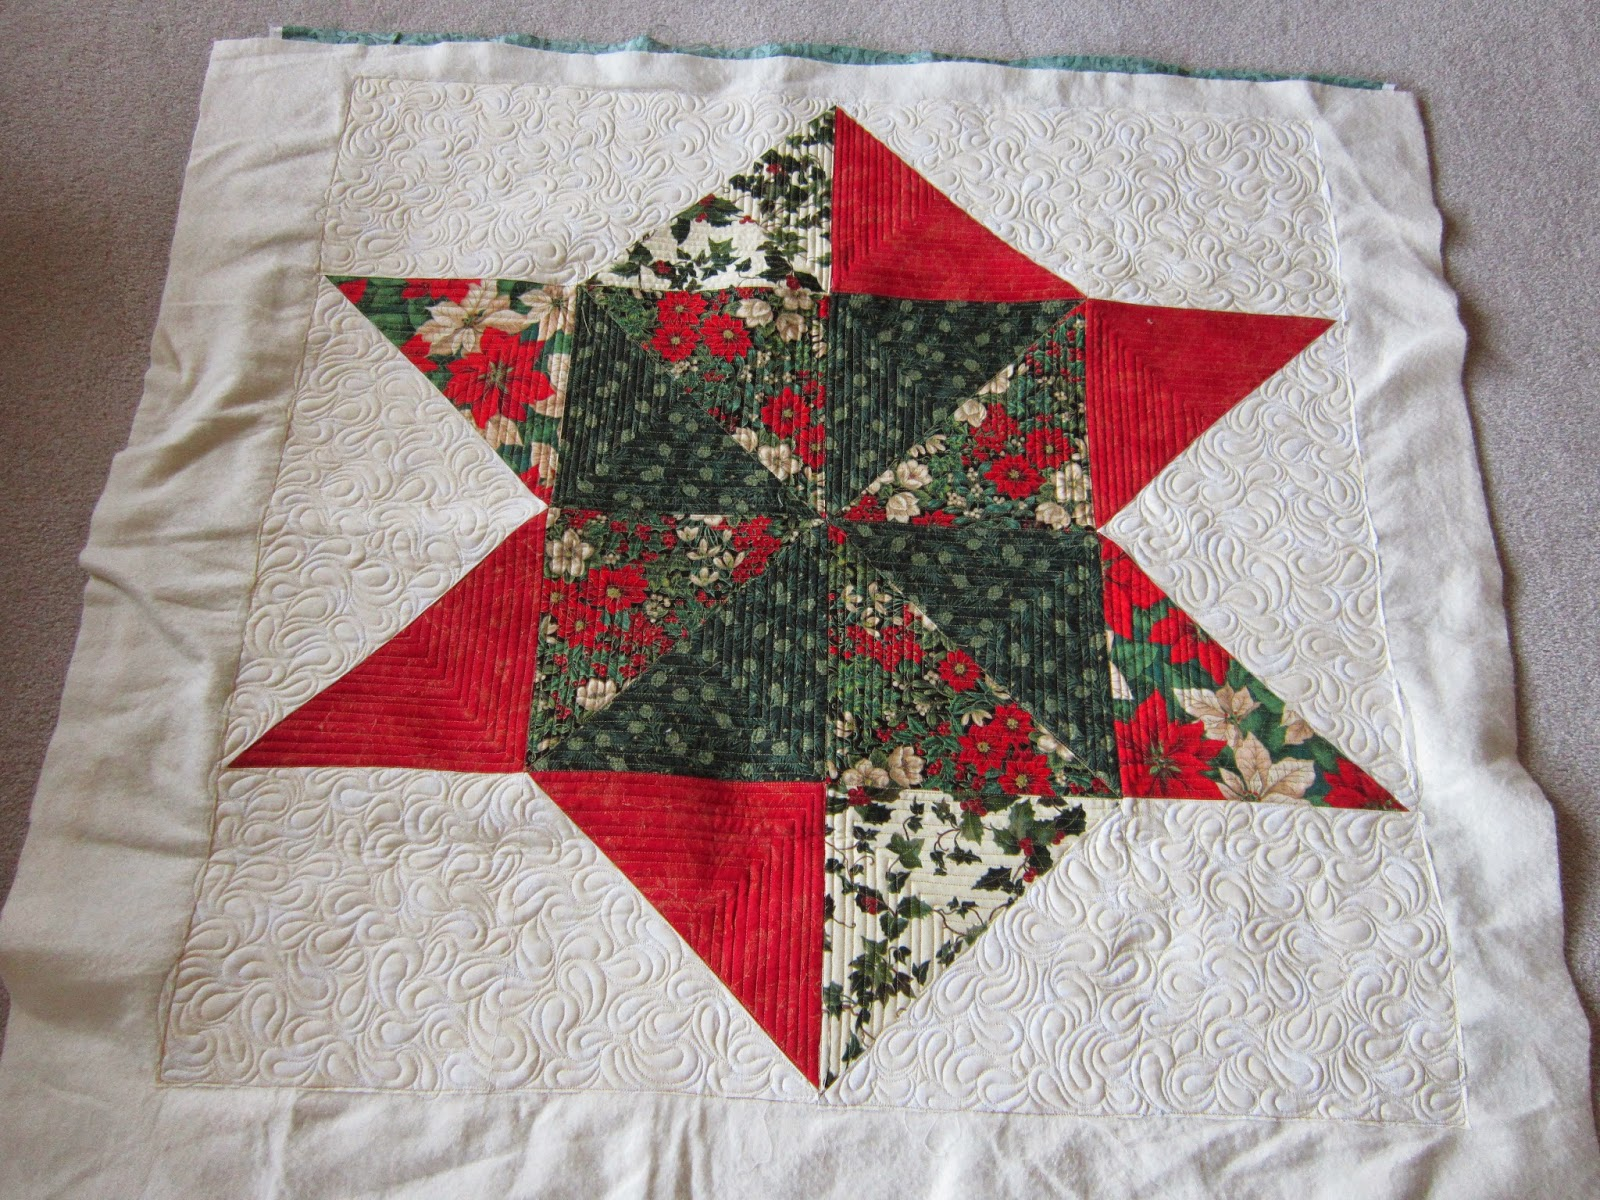 Making Fidget Quilts for Alzheimer's Patients: Free Making quilts with photos